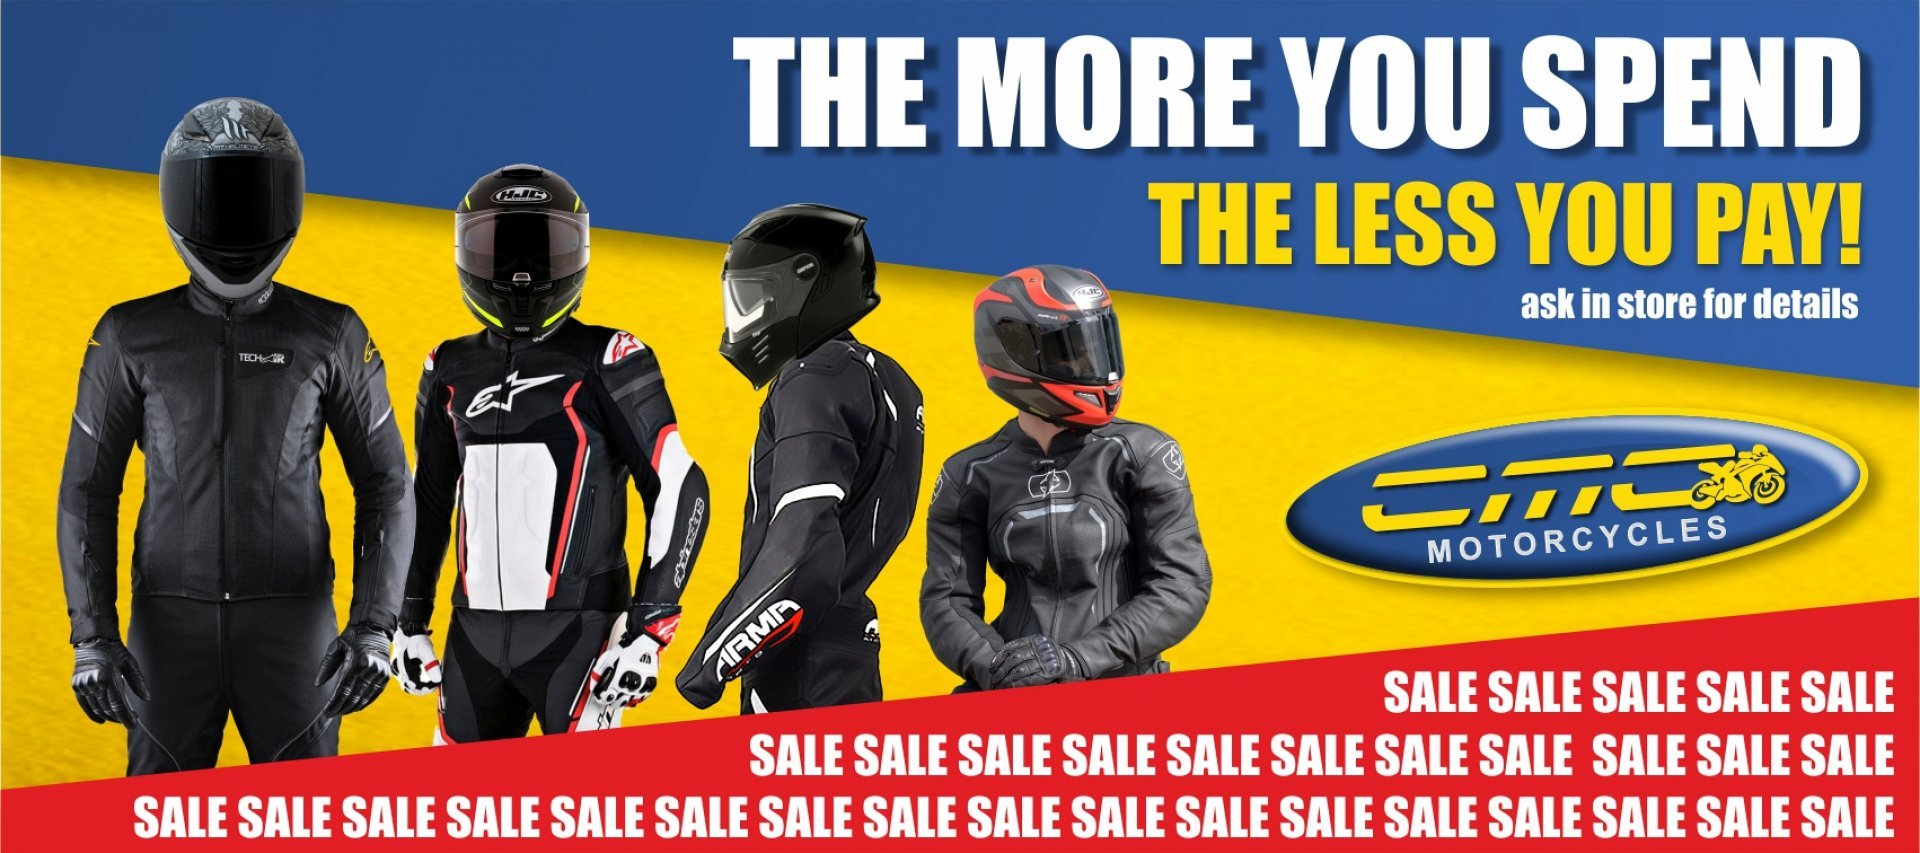 Ask in store for details. We can't publish this deal online.